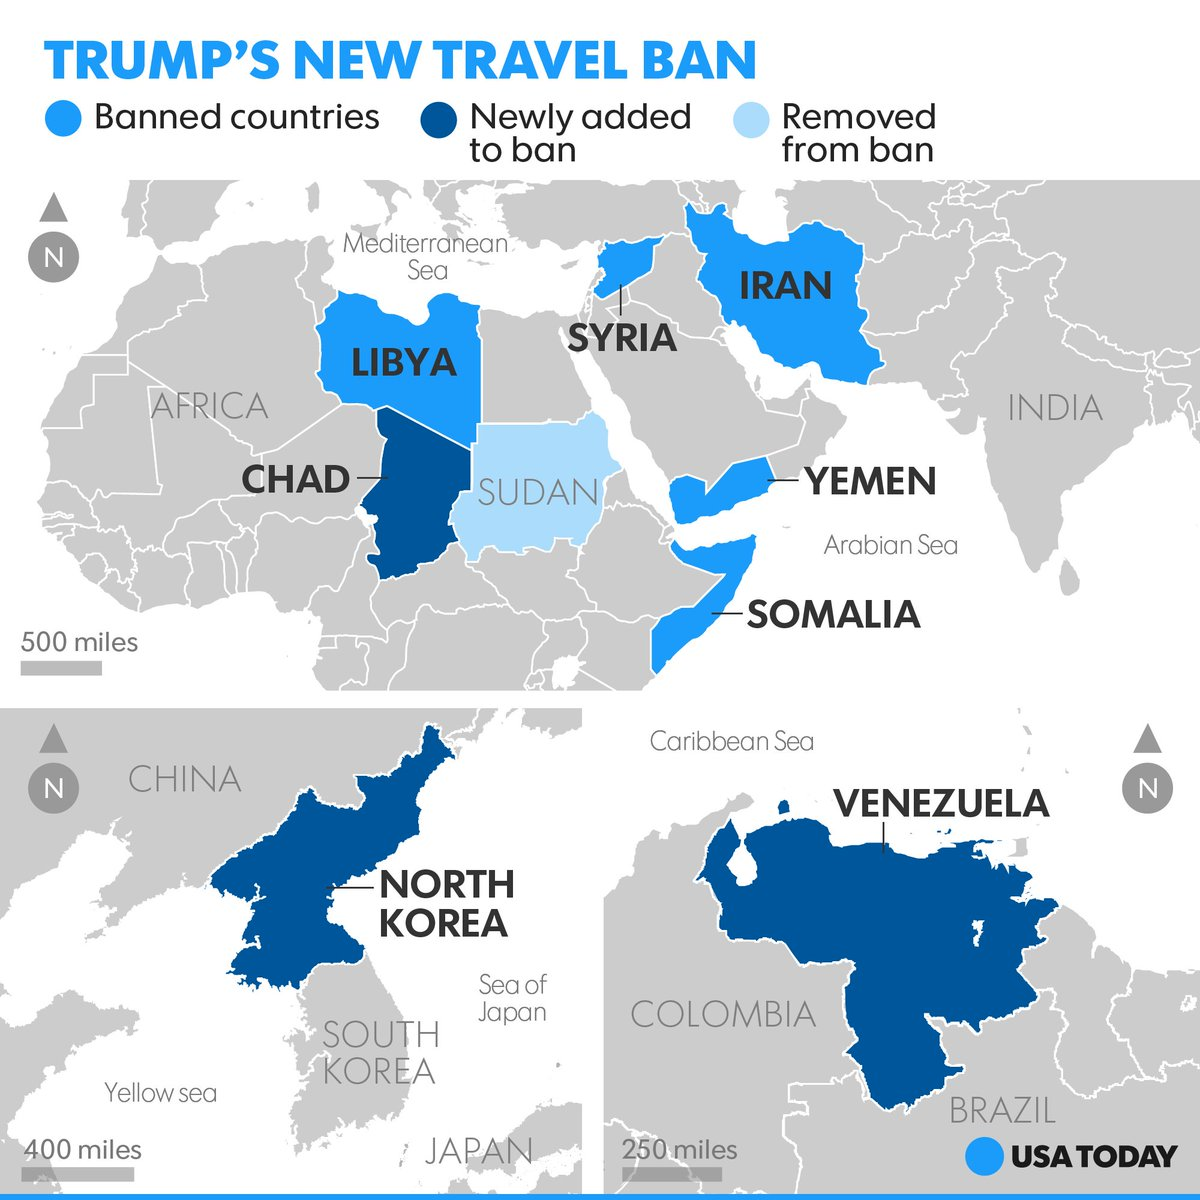 Trump's new travel ban drops Sudan from the list and adds Chad, North Korea, and Venezuela.